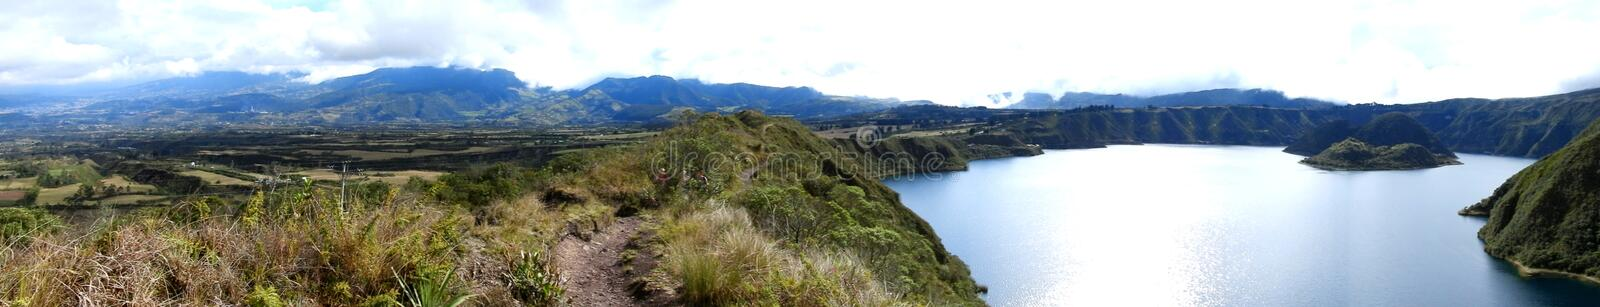 Panorama of Cotacachi crater lake, Ecuador. Panoramic view of a Hiking trail in the Cotacachi Cayapas nature park in Ecuador, South America. Ecological reserve royalty free stock images